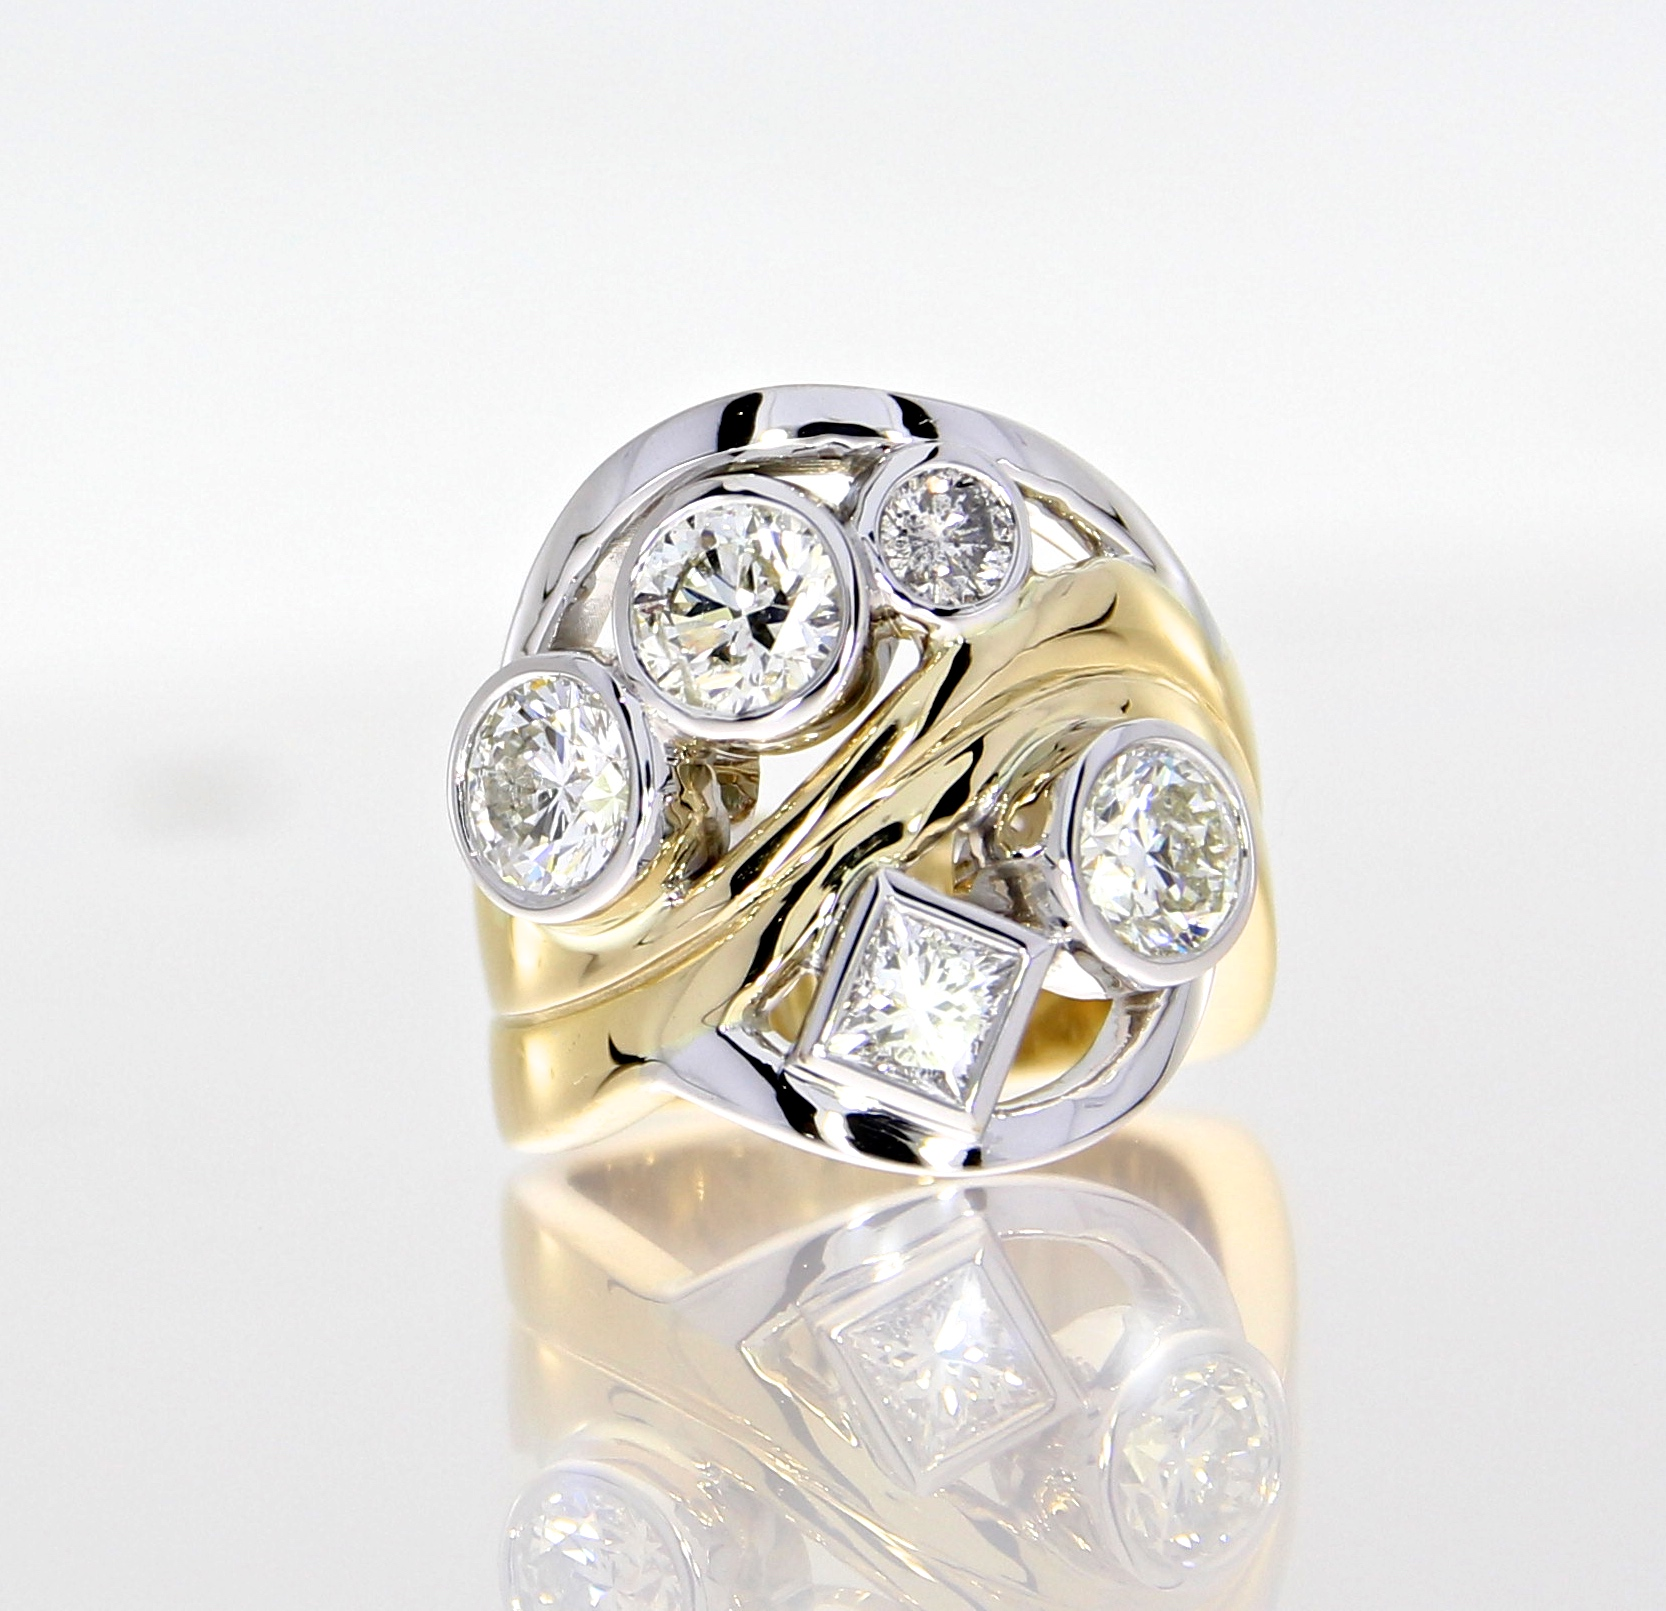 Restyling & Redesign - Create something new without losing the sentiment of the past. We thoughtfully transition your jewelry pieces of old, working with your diamonds and fine gems, into new items that fit you and your lifestyle